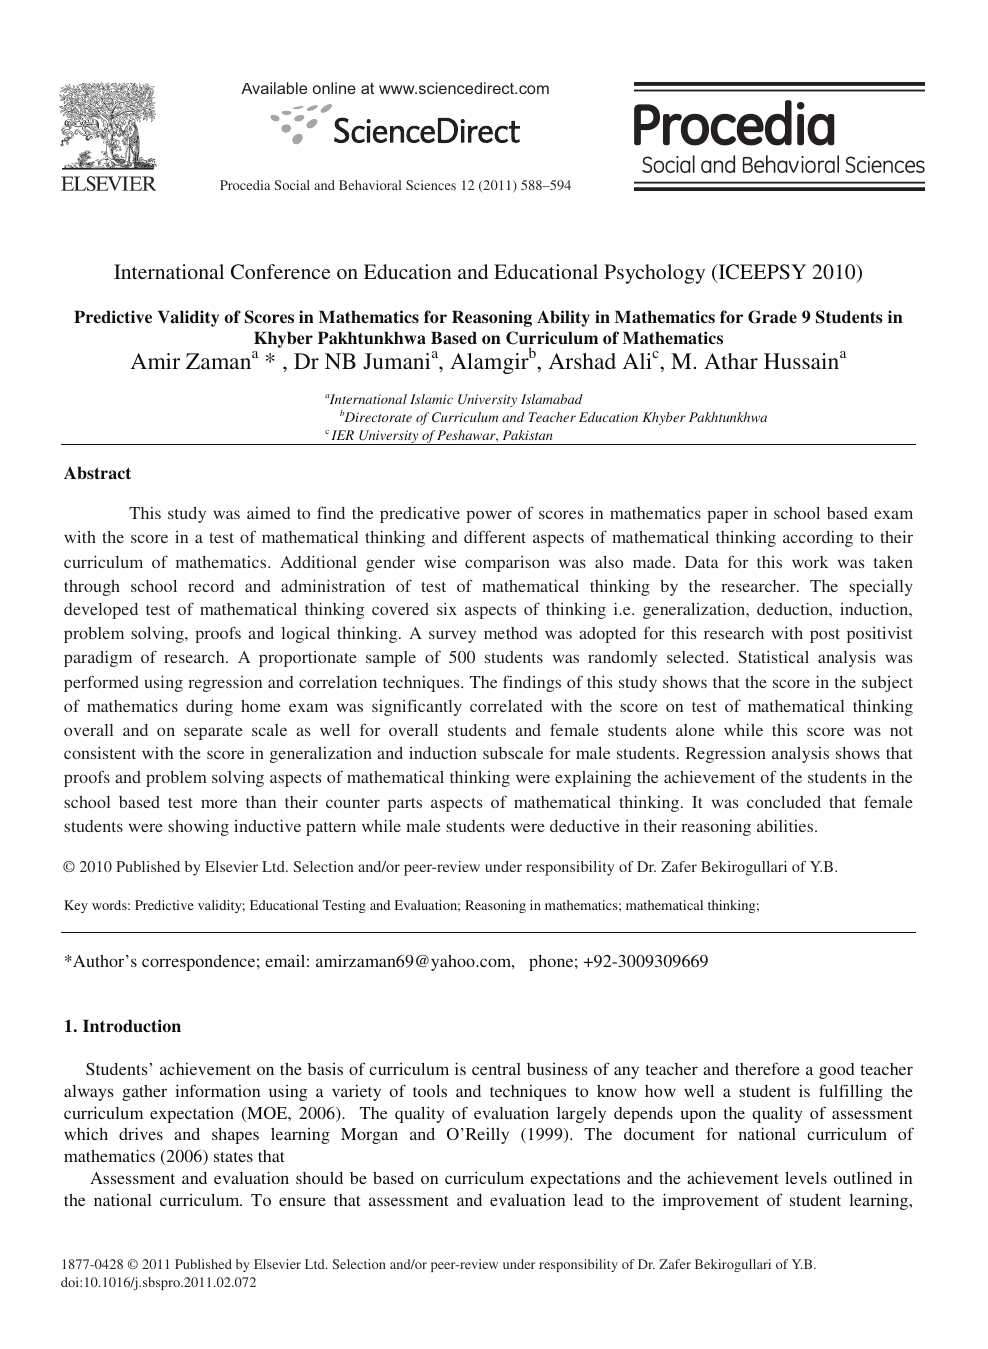 Predictive Validity of Scores in Mathematics for Reasoning Ability